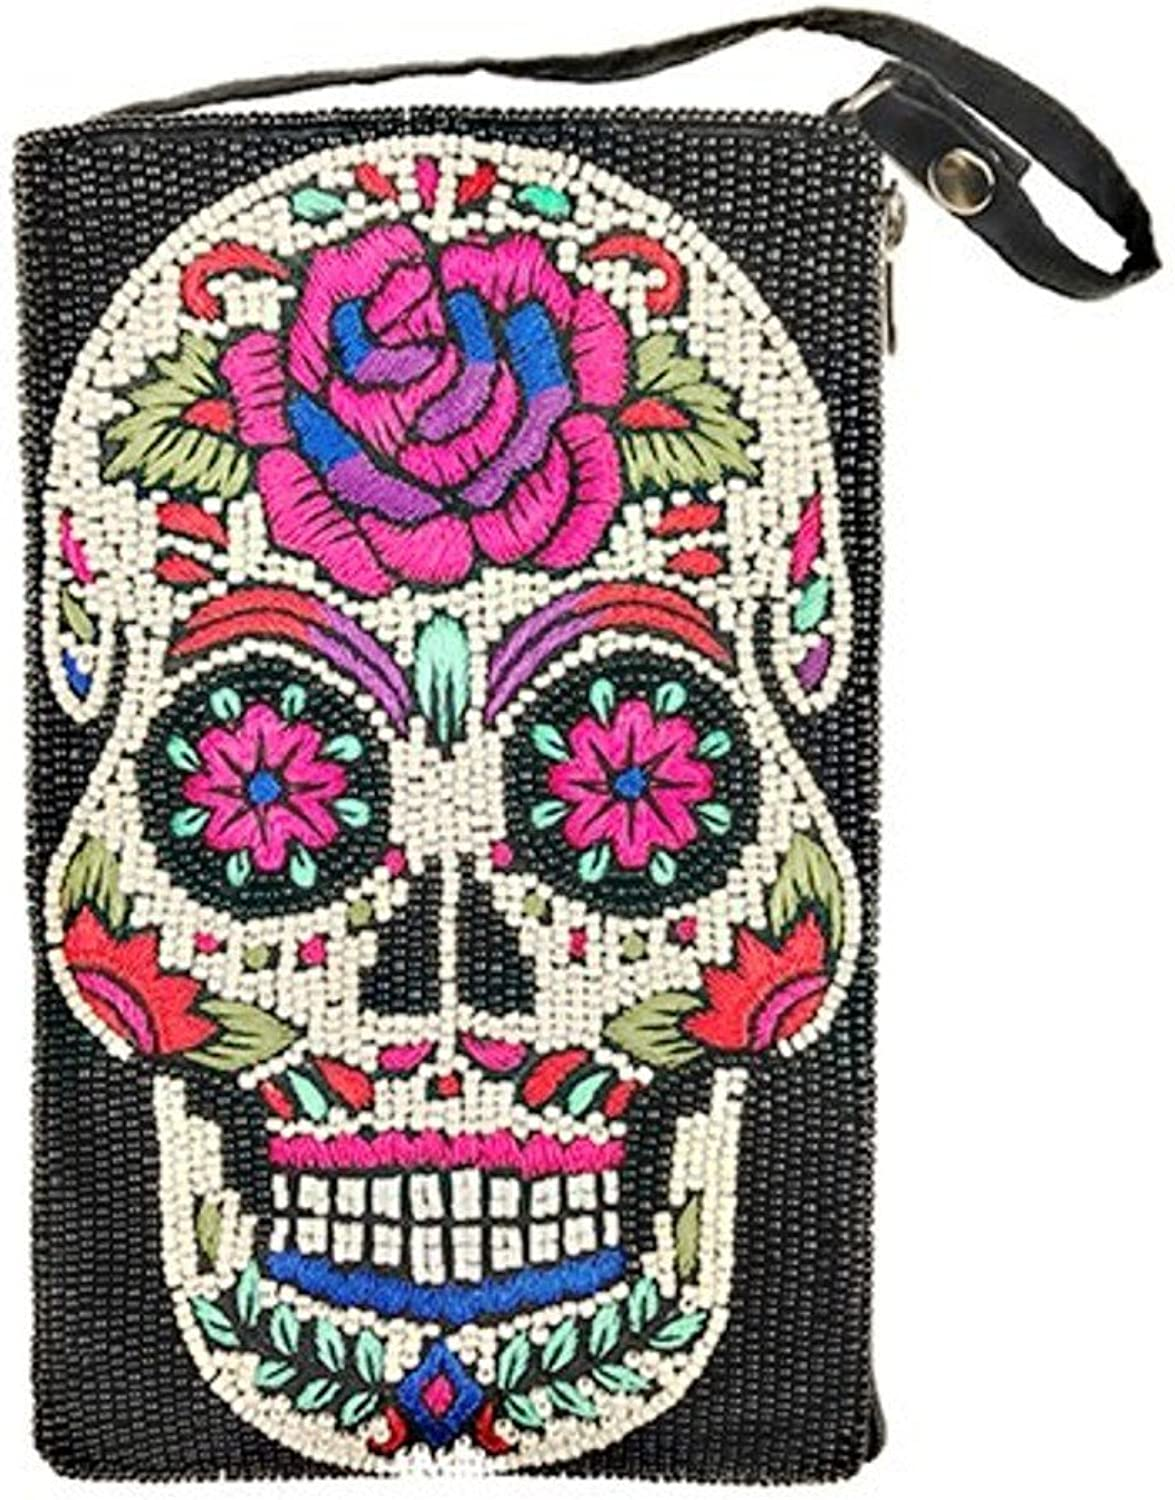 Bamboo Trading Company Cell Phone or Club Bag, Sugar Skull